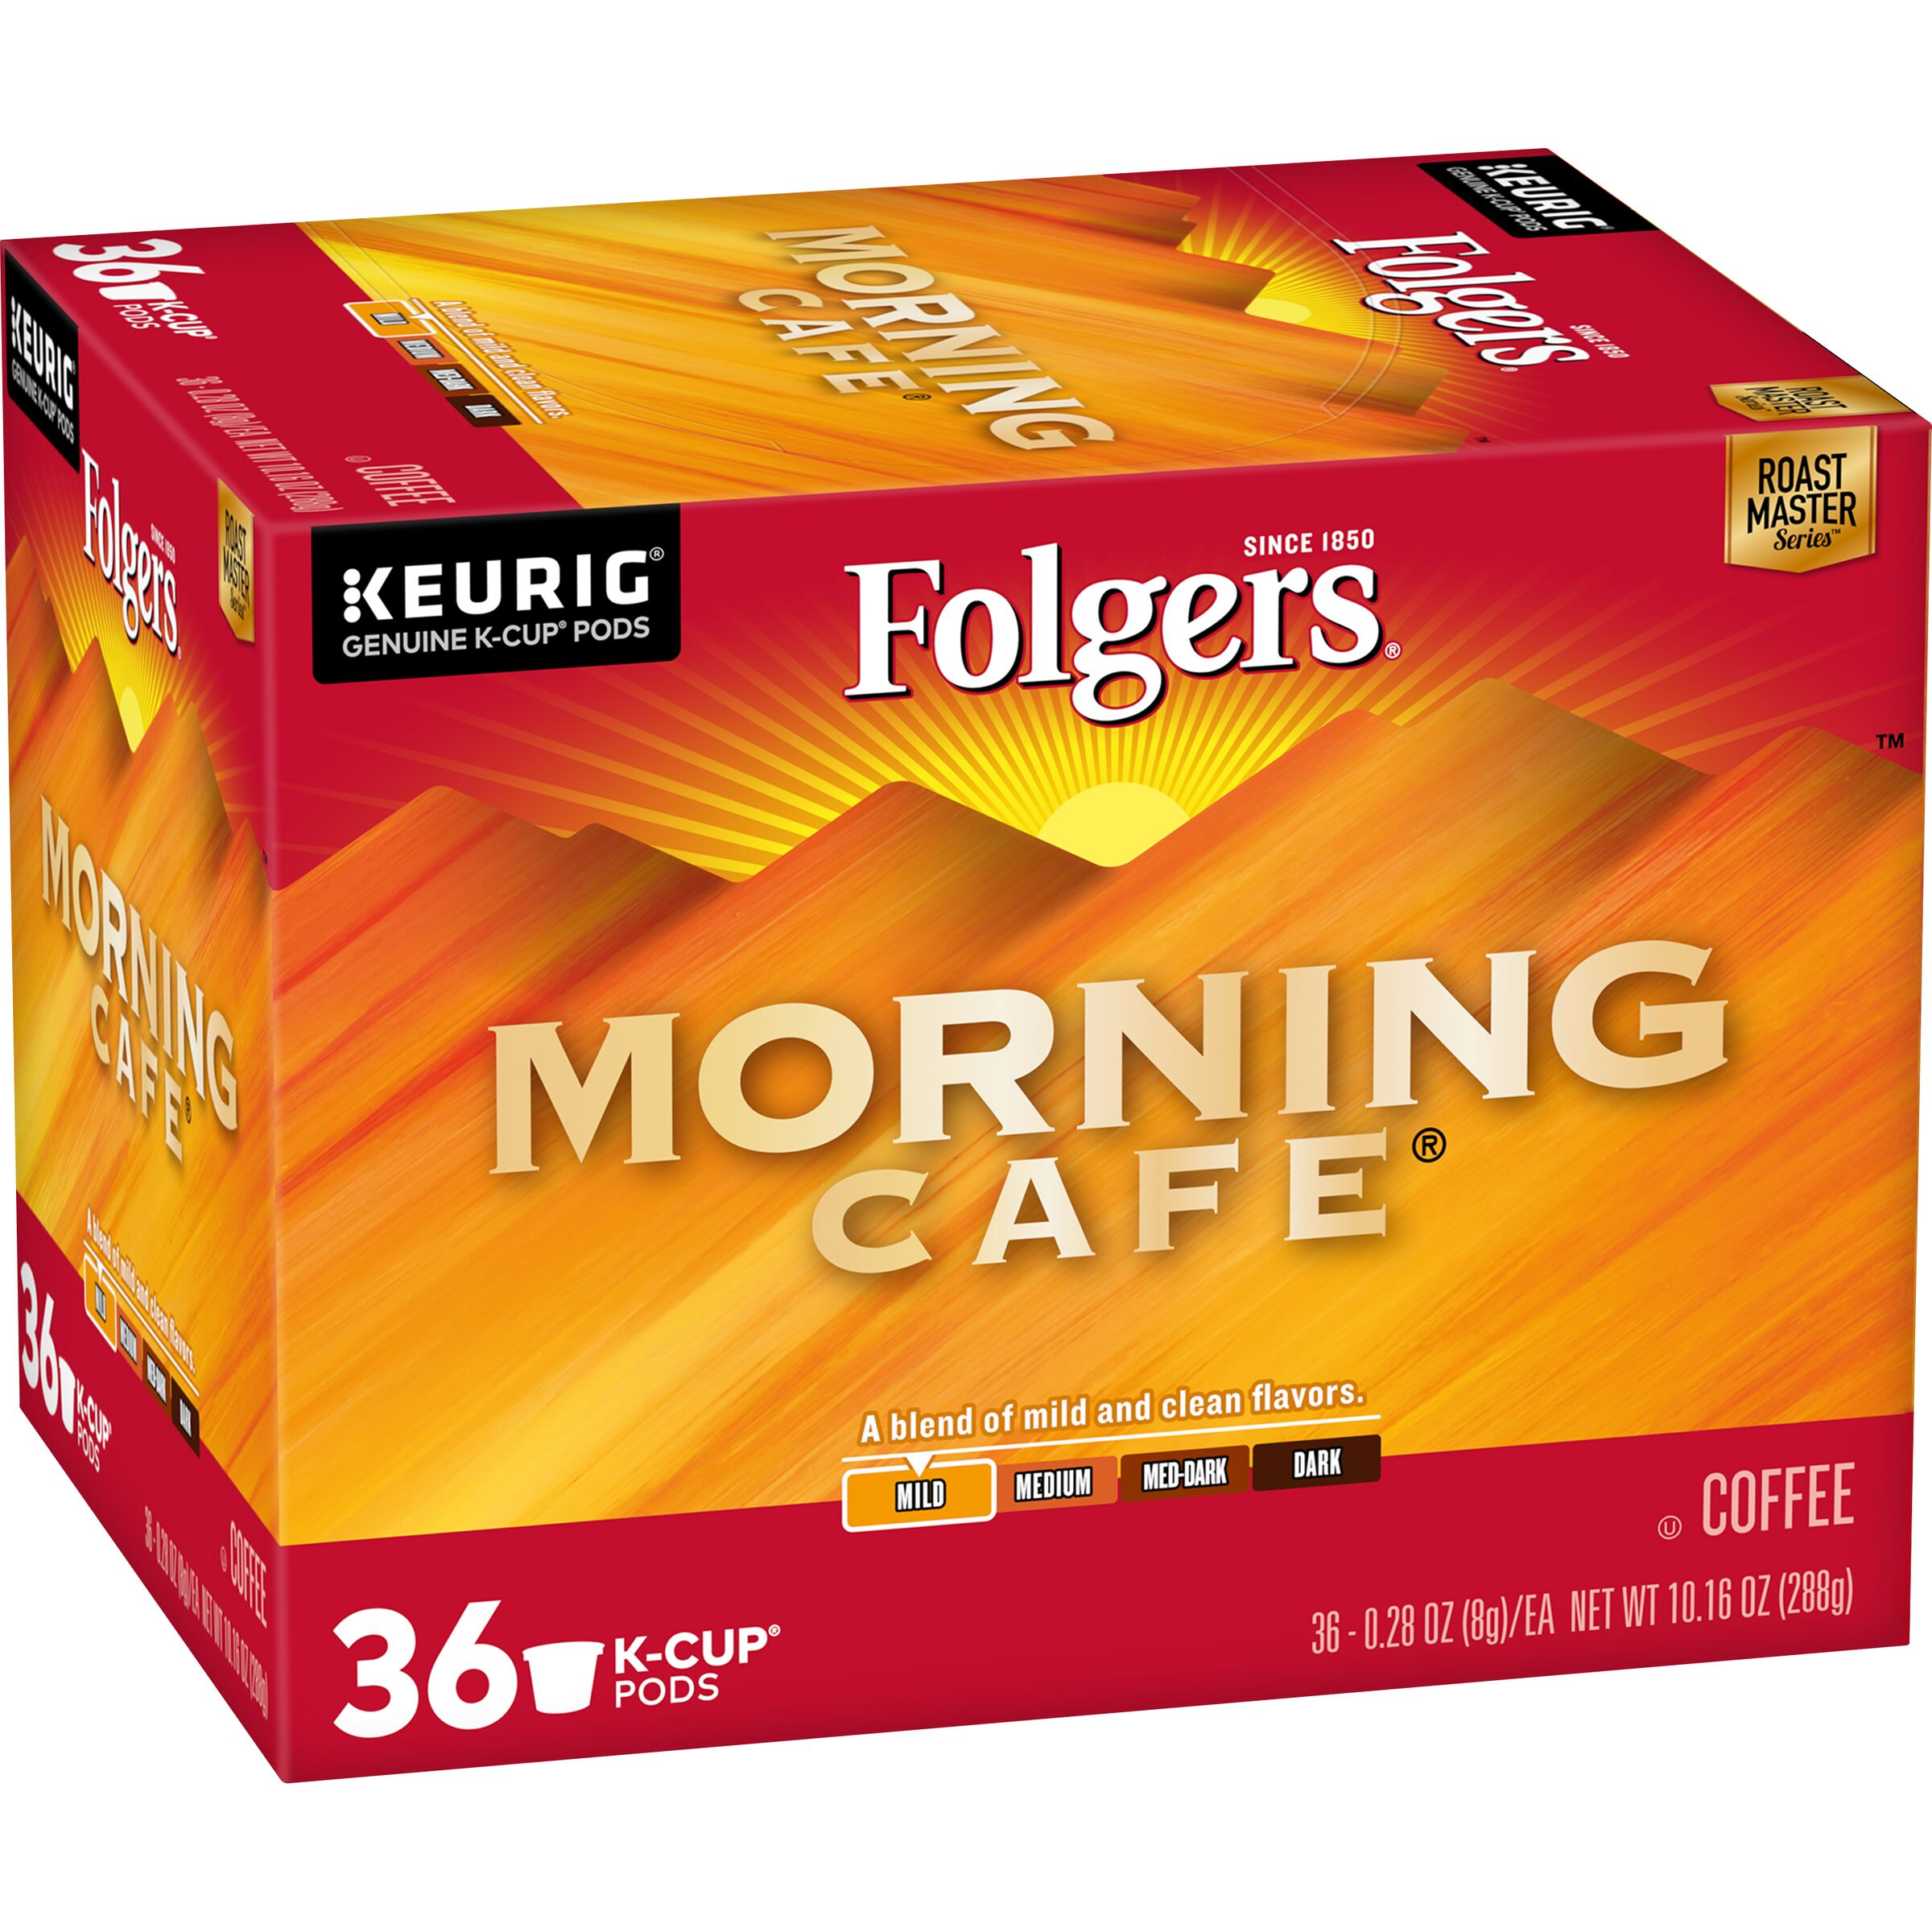 Folgers  Morning Cafe® Coffee K-Cup® Pods, 36 count